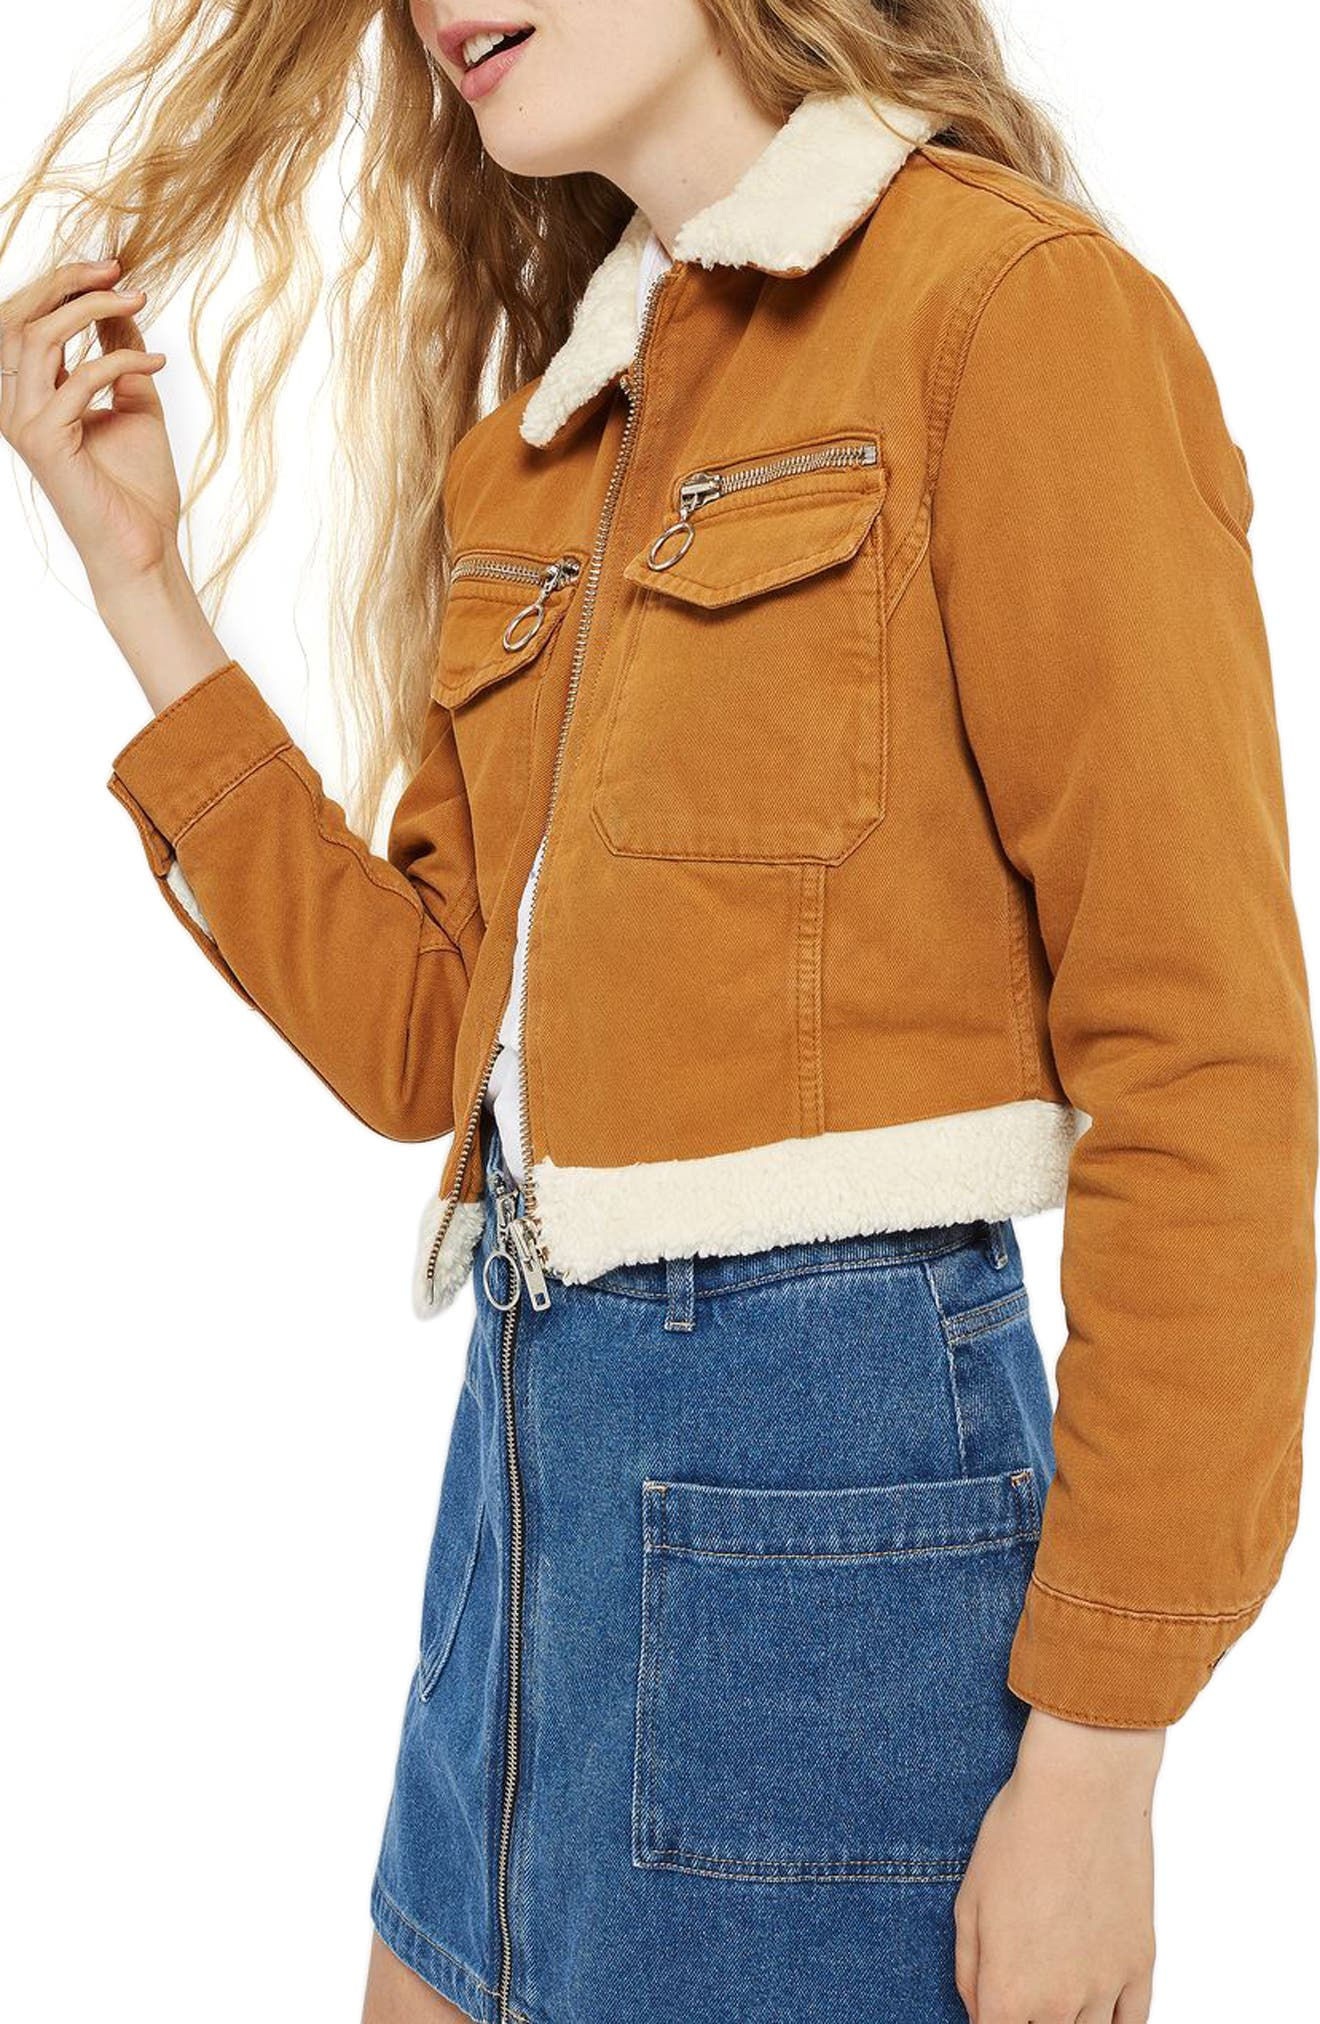 Borg Trim Crop Denim Jacket,                             Alternate thumbnail 4, color,                             Tan